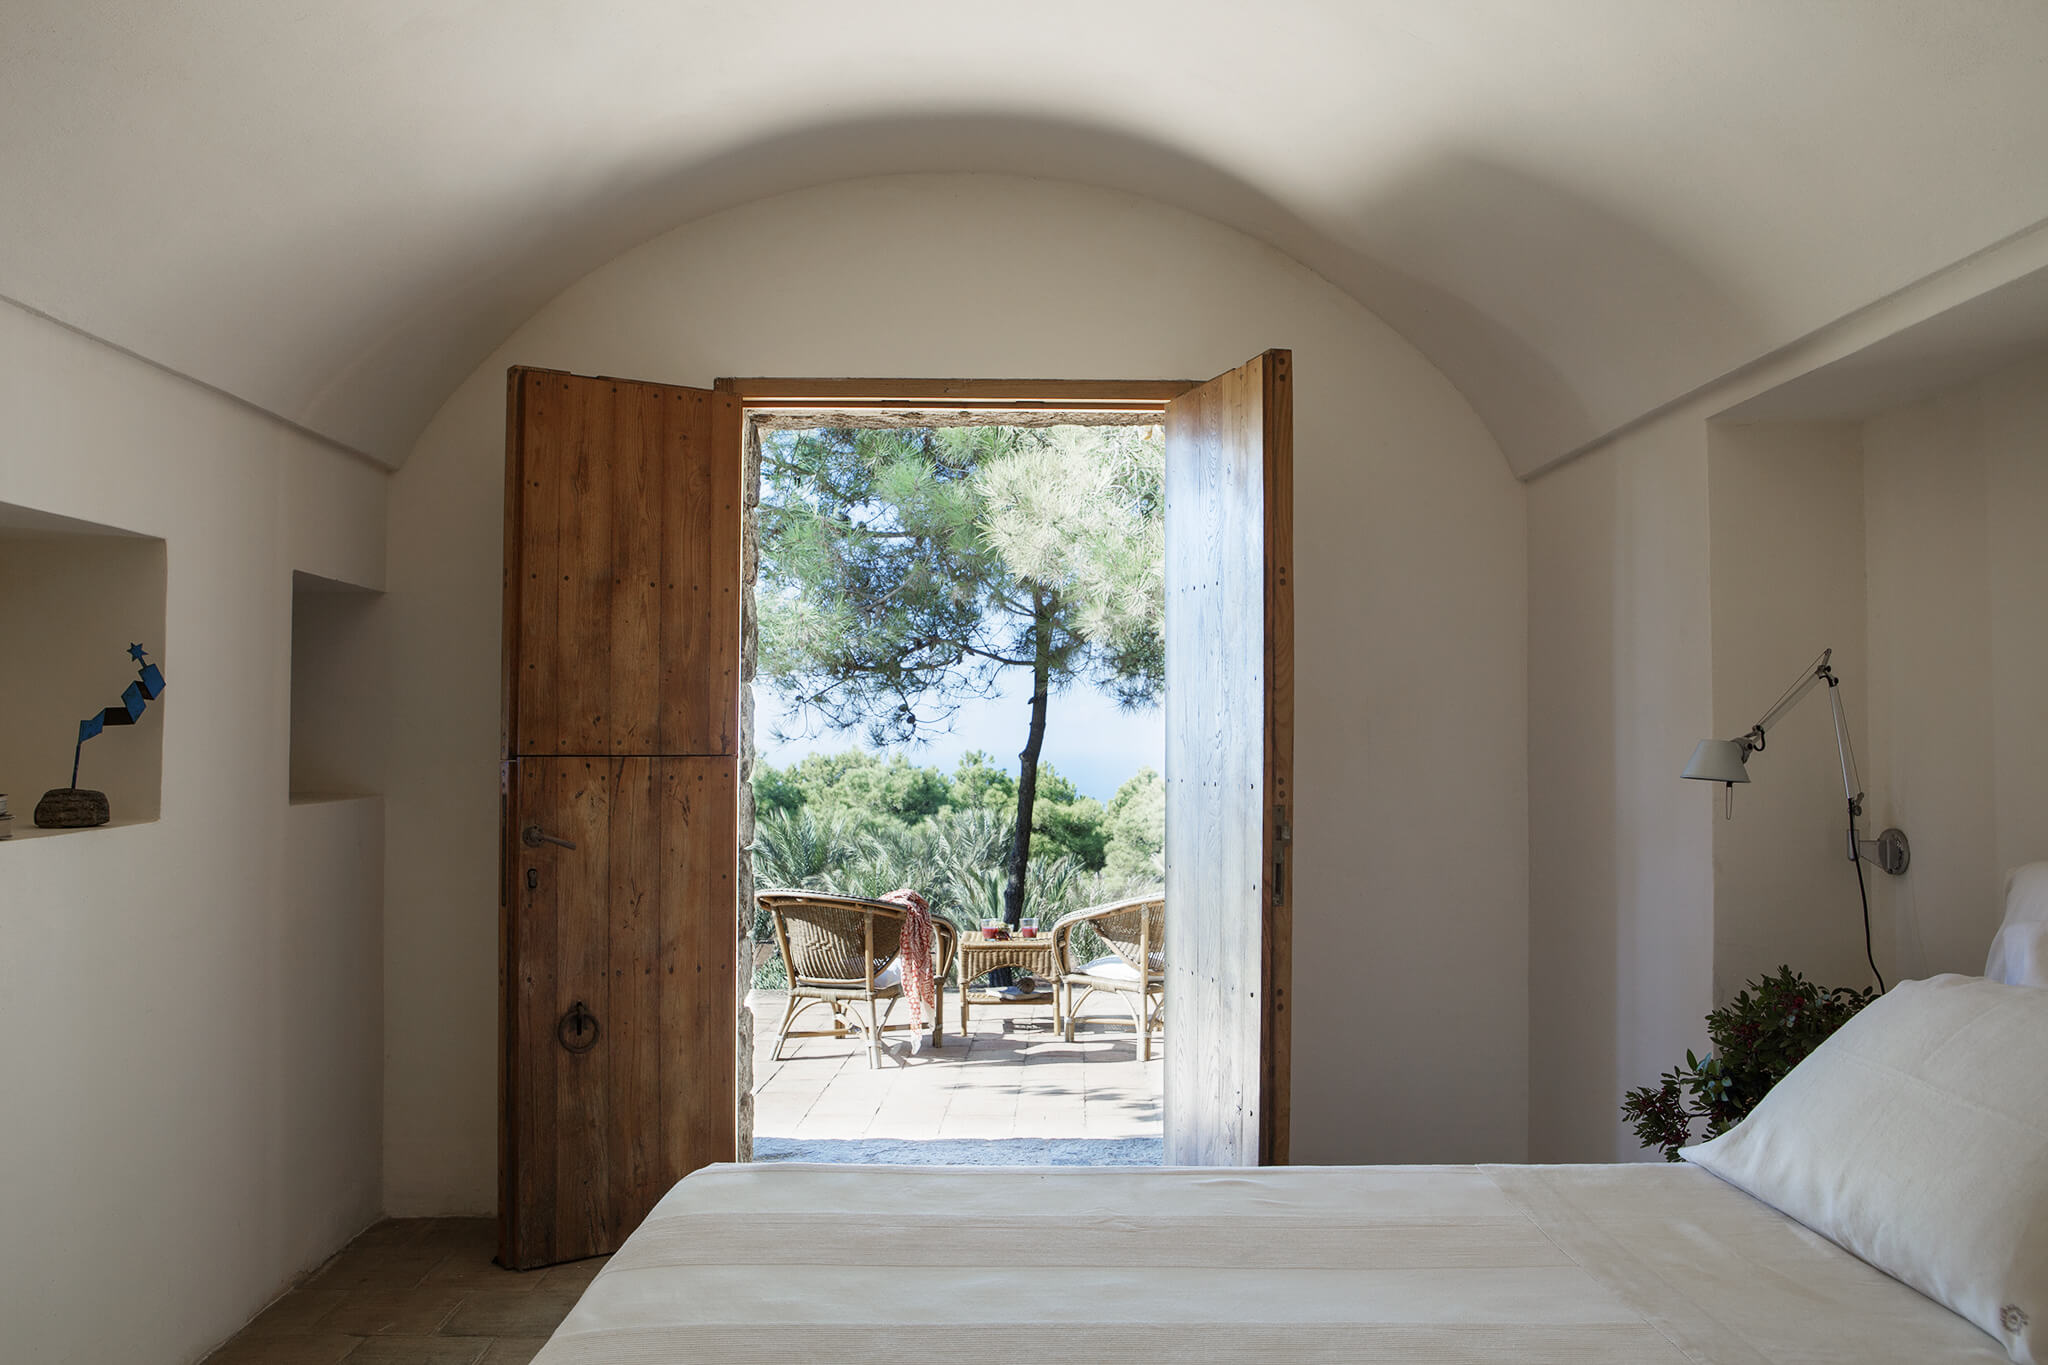 Beautiful natural looking bedroom with door open and vista out to pine trees